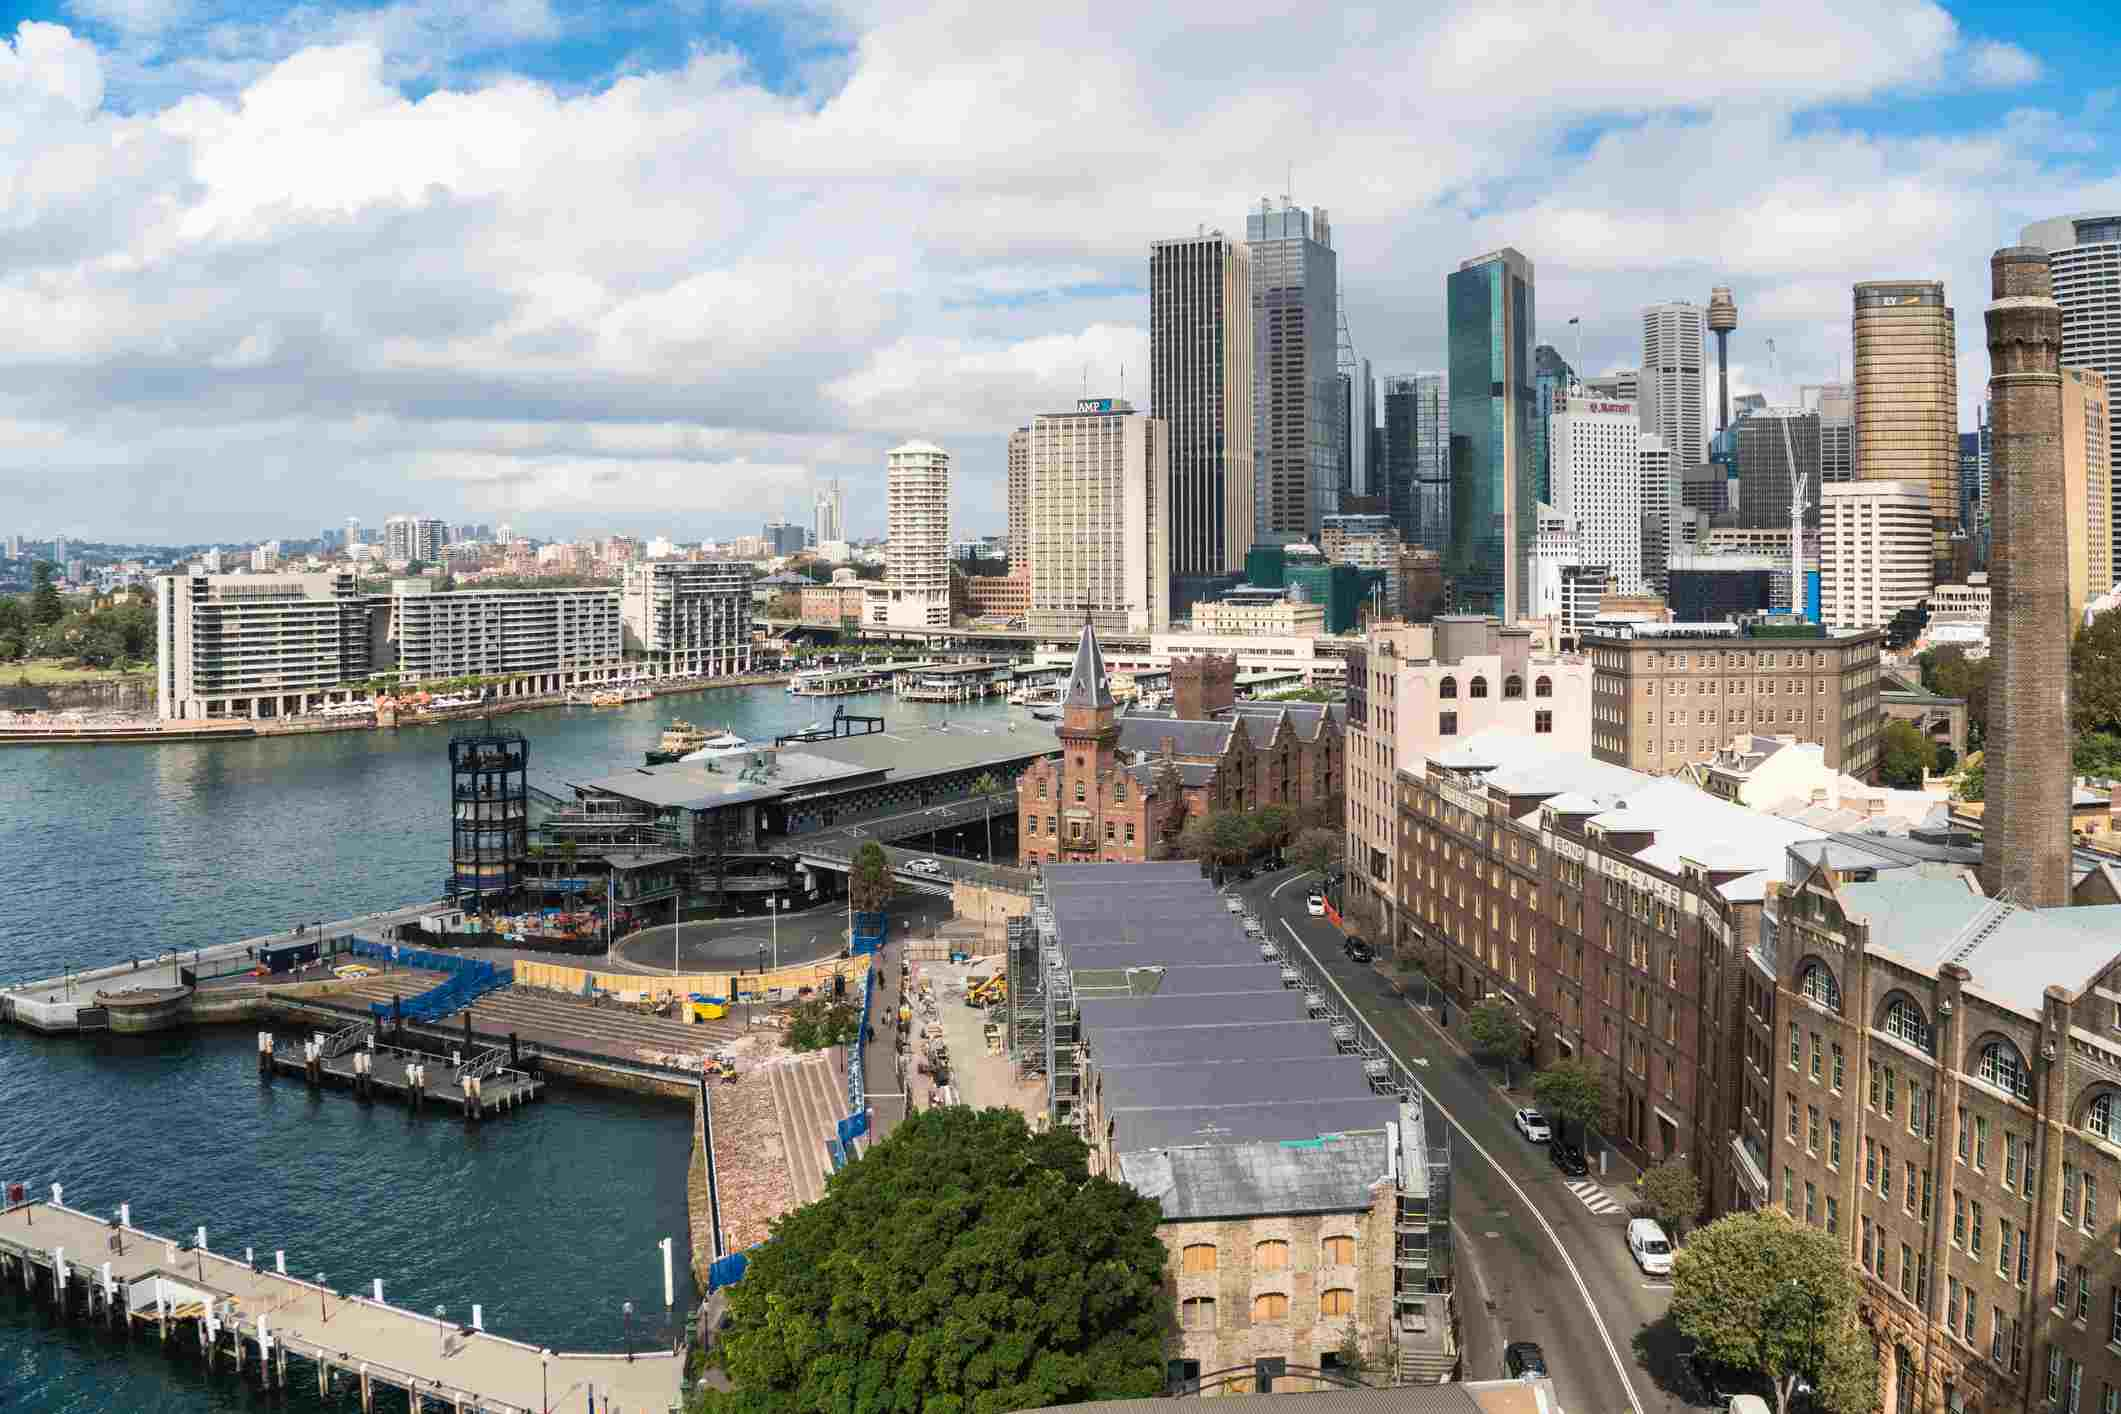 Aerial view of the rocks, Circular Quay and the Sydney Downtown district skyline by the Sydney harbor in Australia largest city.